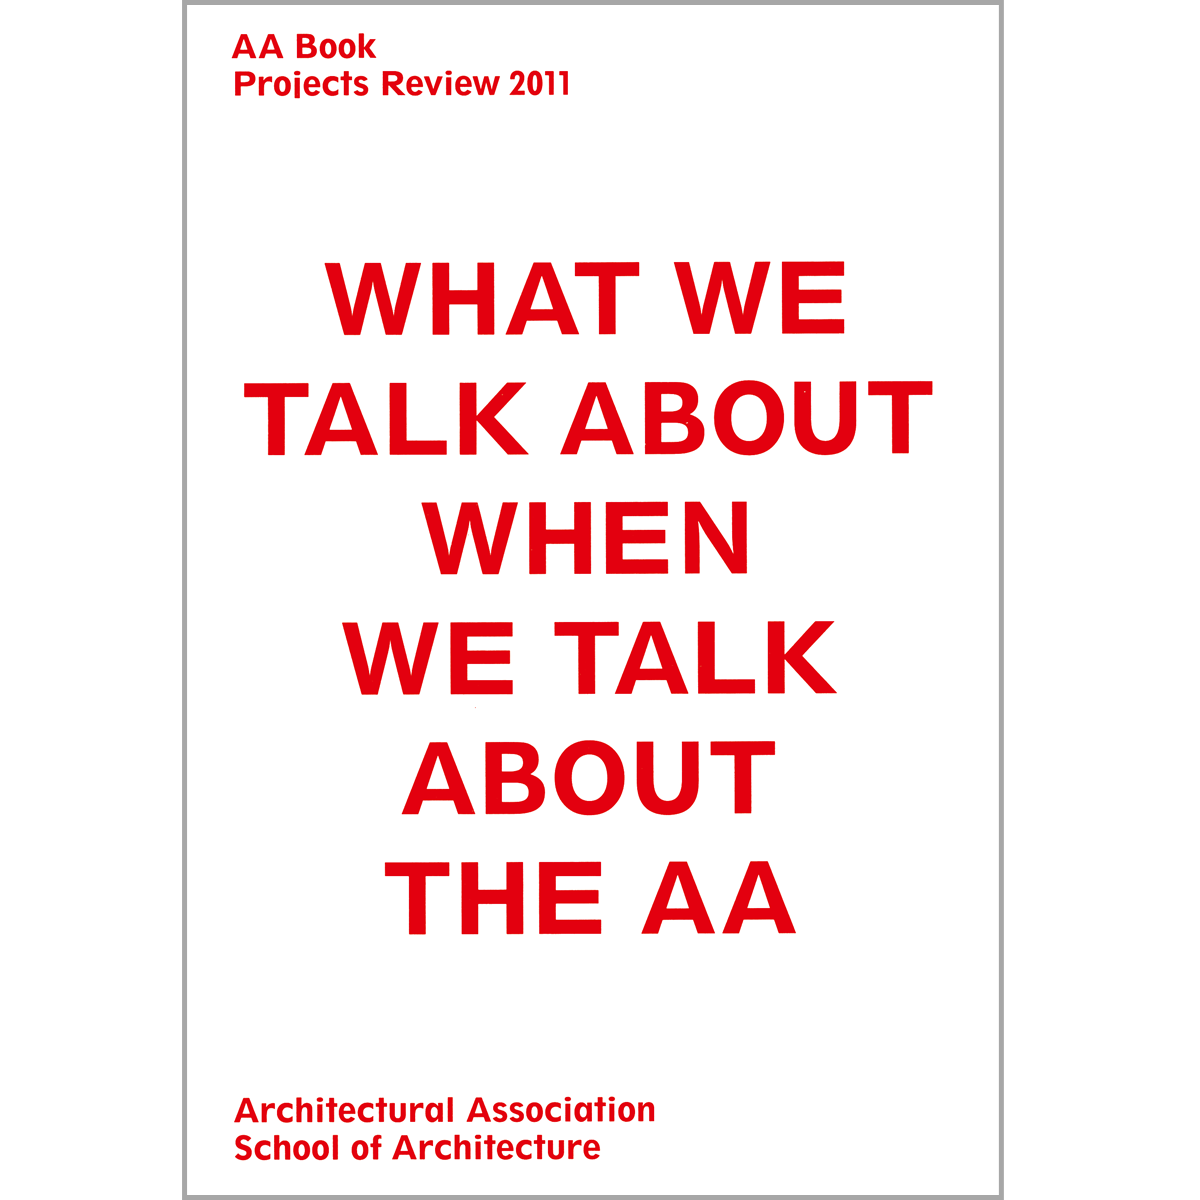 AA Book: Project Review 2011